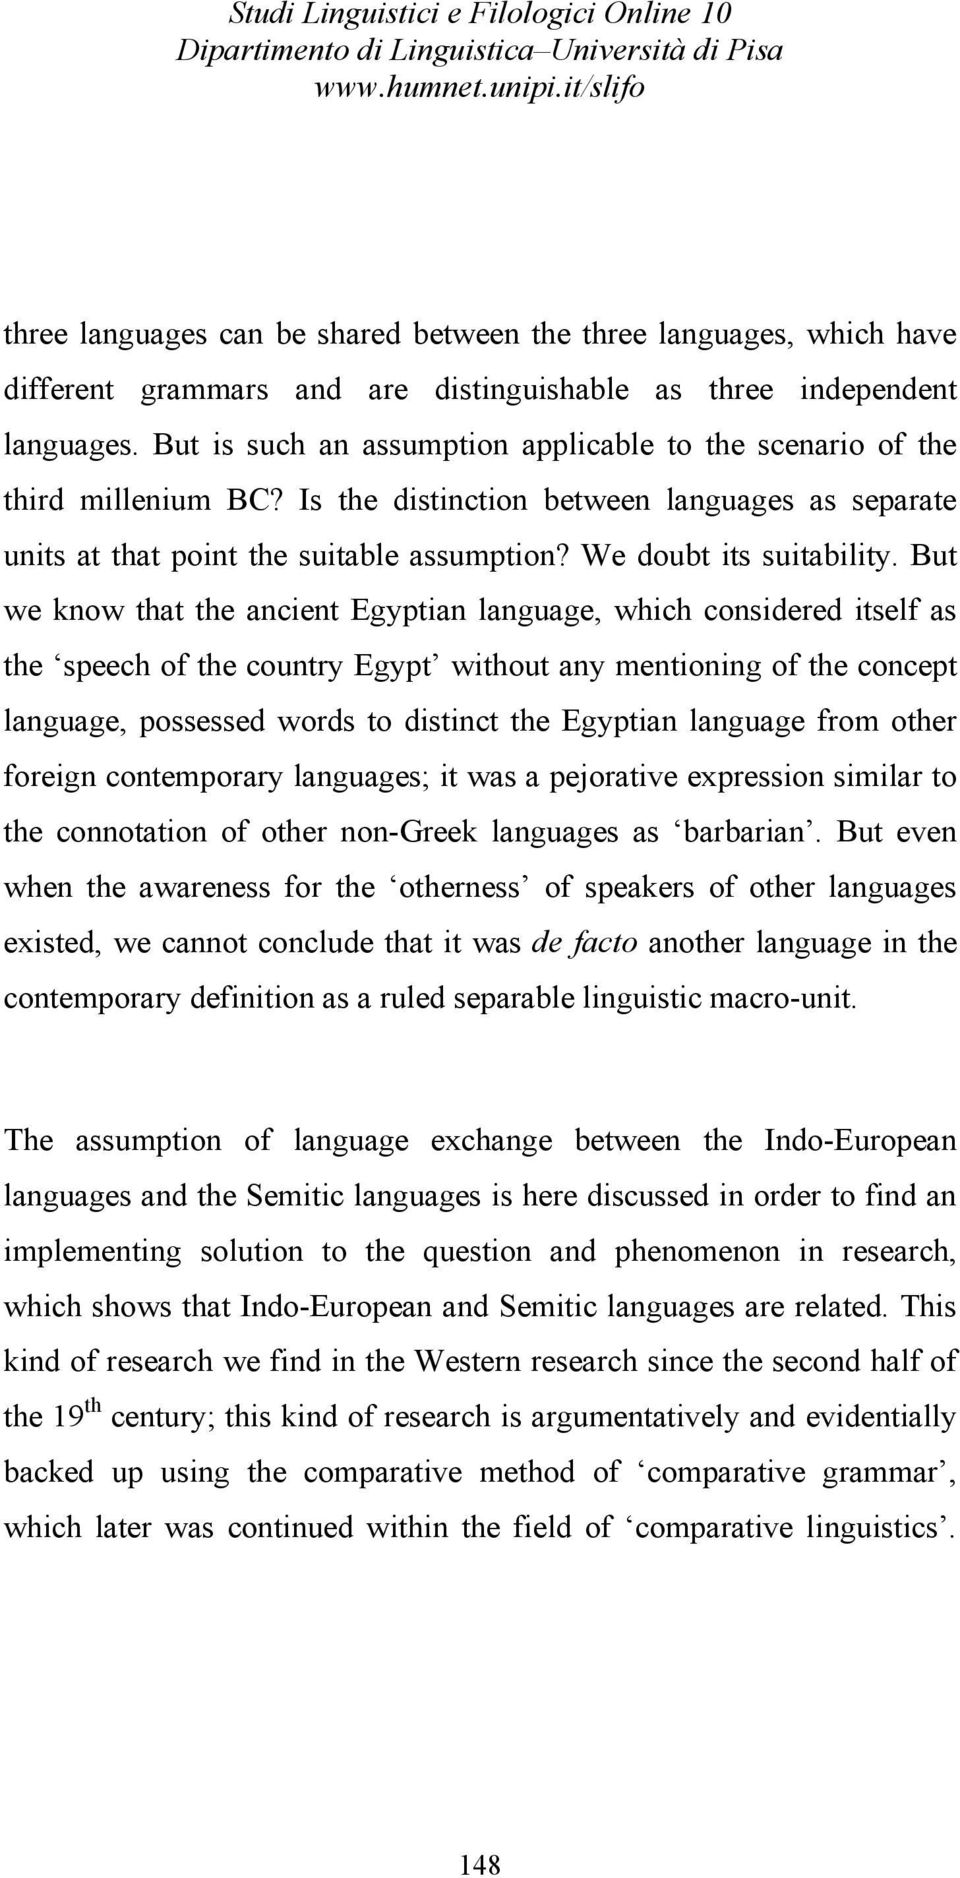 But we know that the ancient Egyptian language, which considered itself as the speech of the country Egypt without any mentioning of the concept language, possessed words to distinct the Egyptian